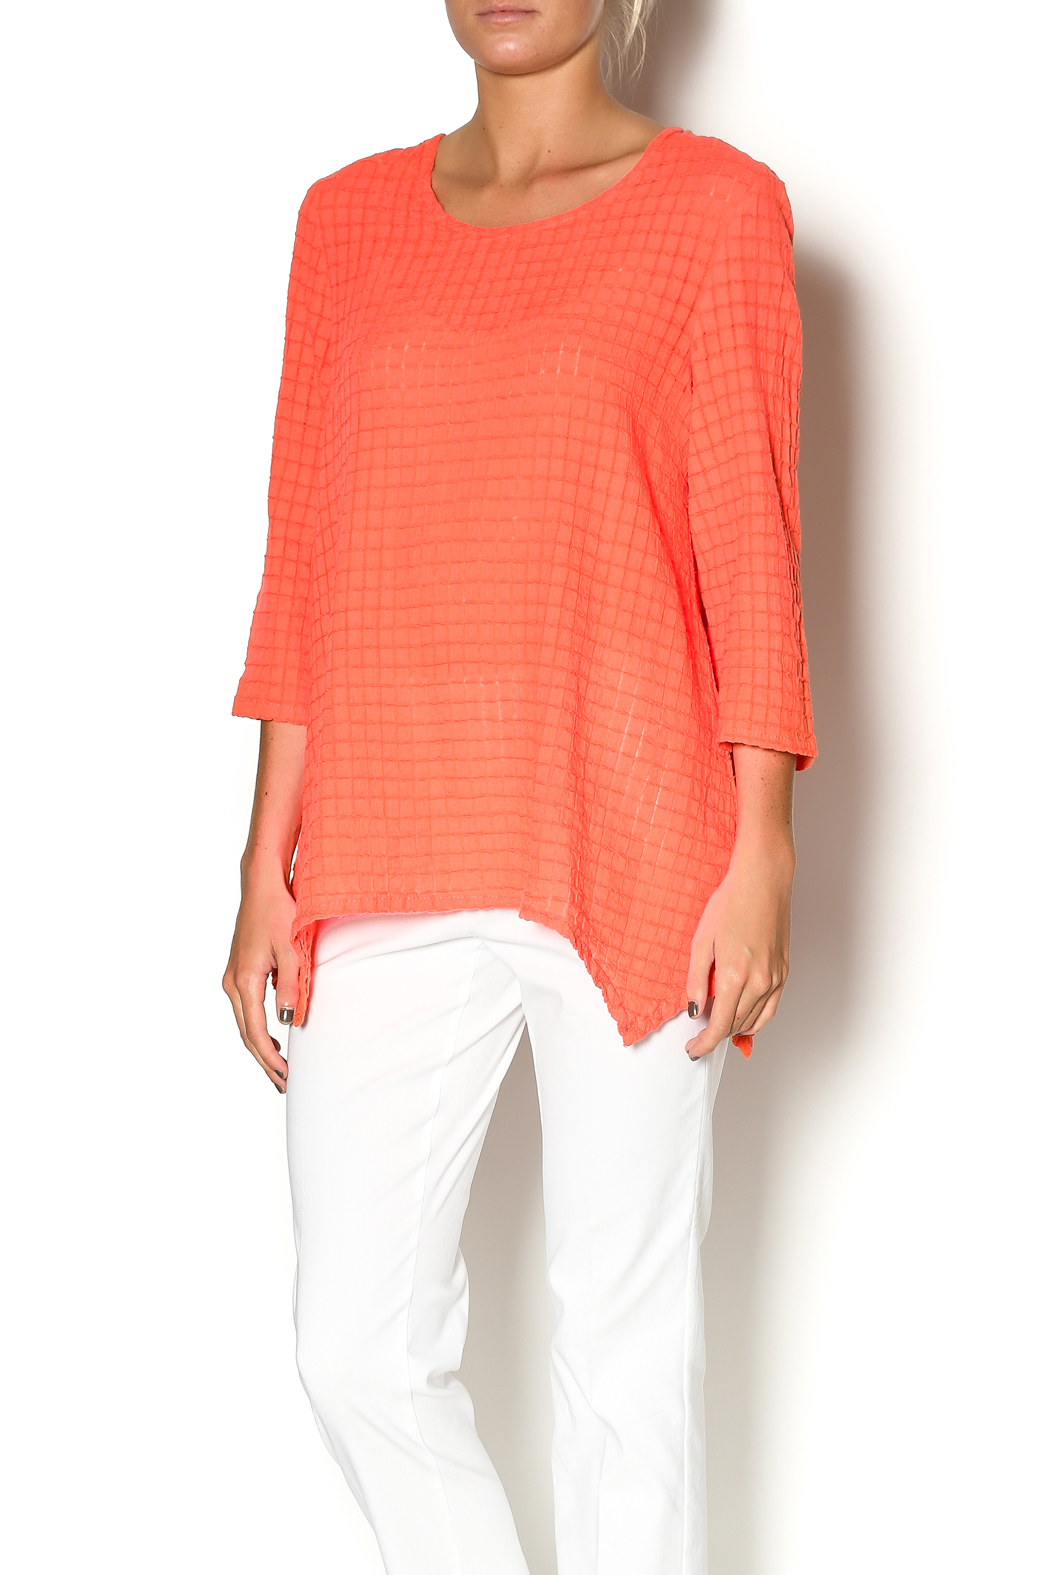 Lulu B Angled Tunic From Florida By Things You Like